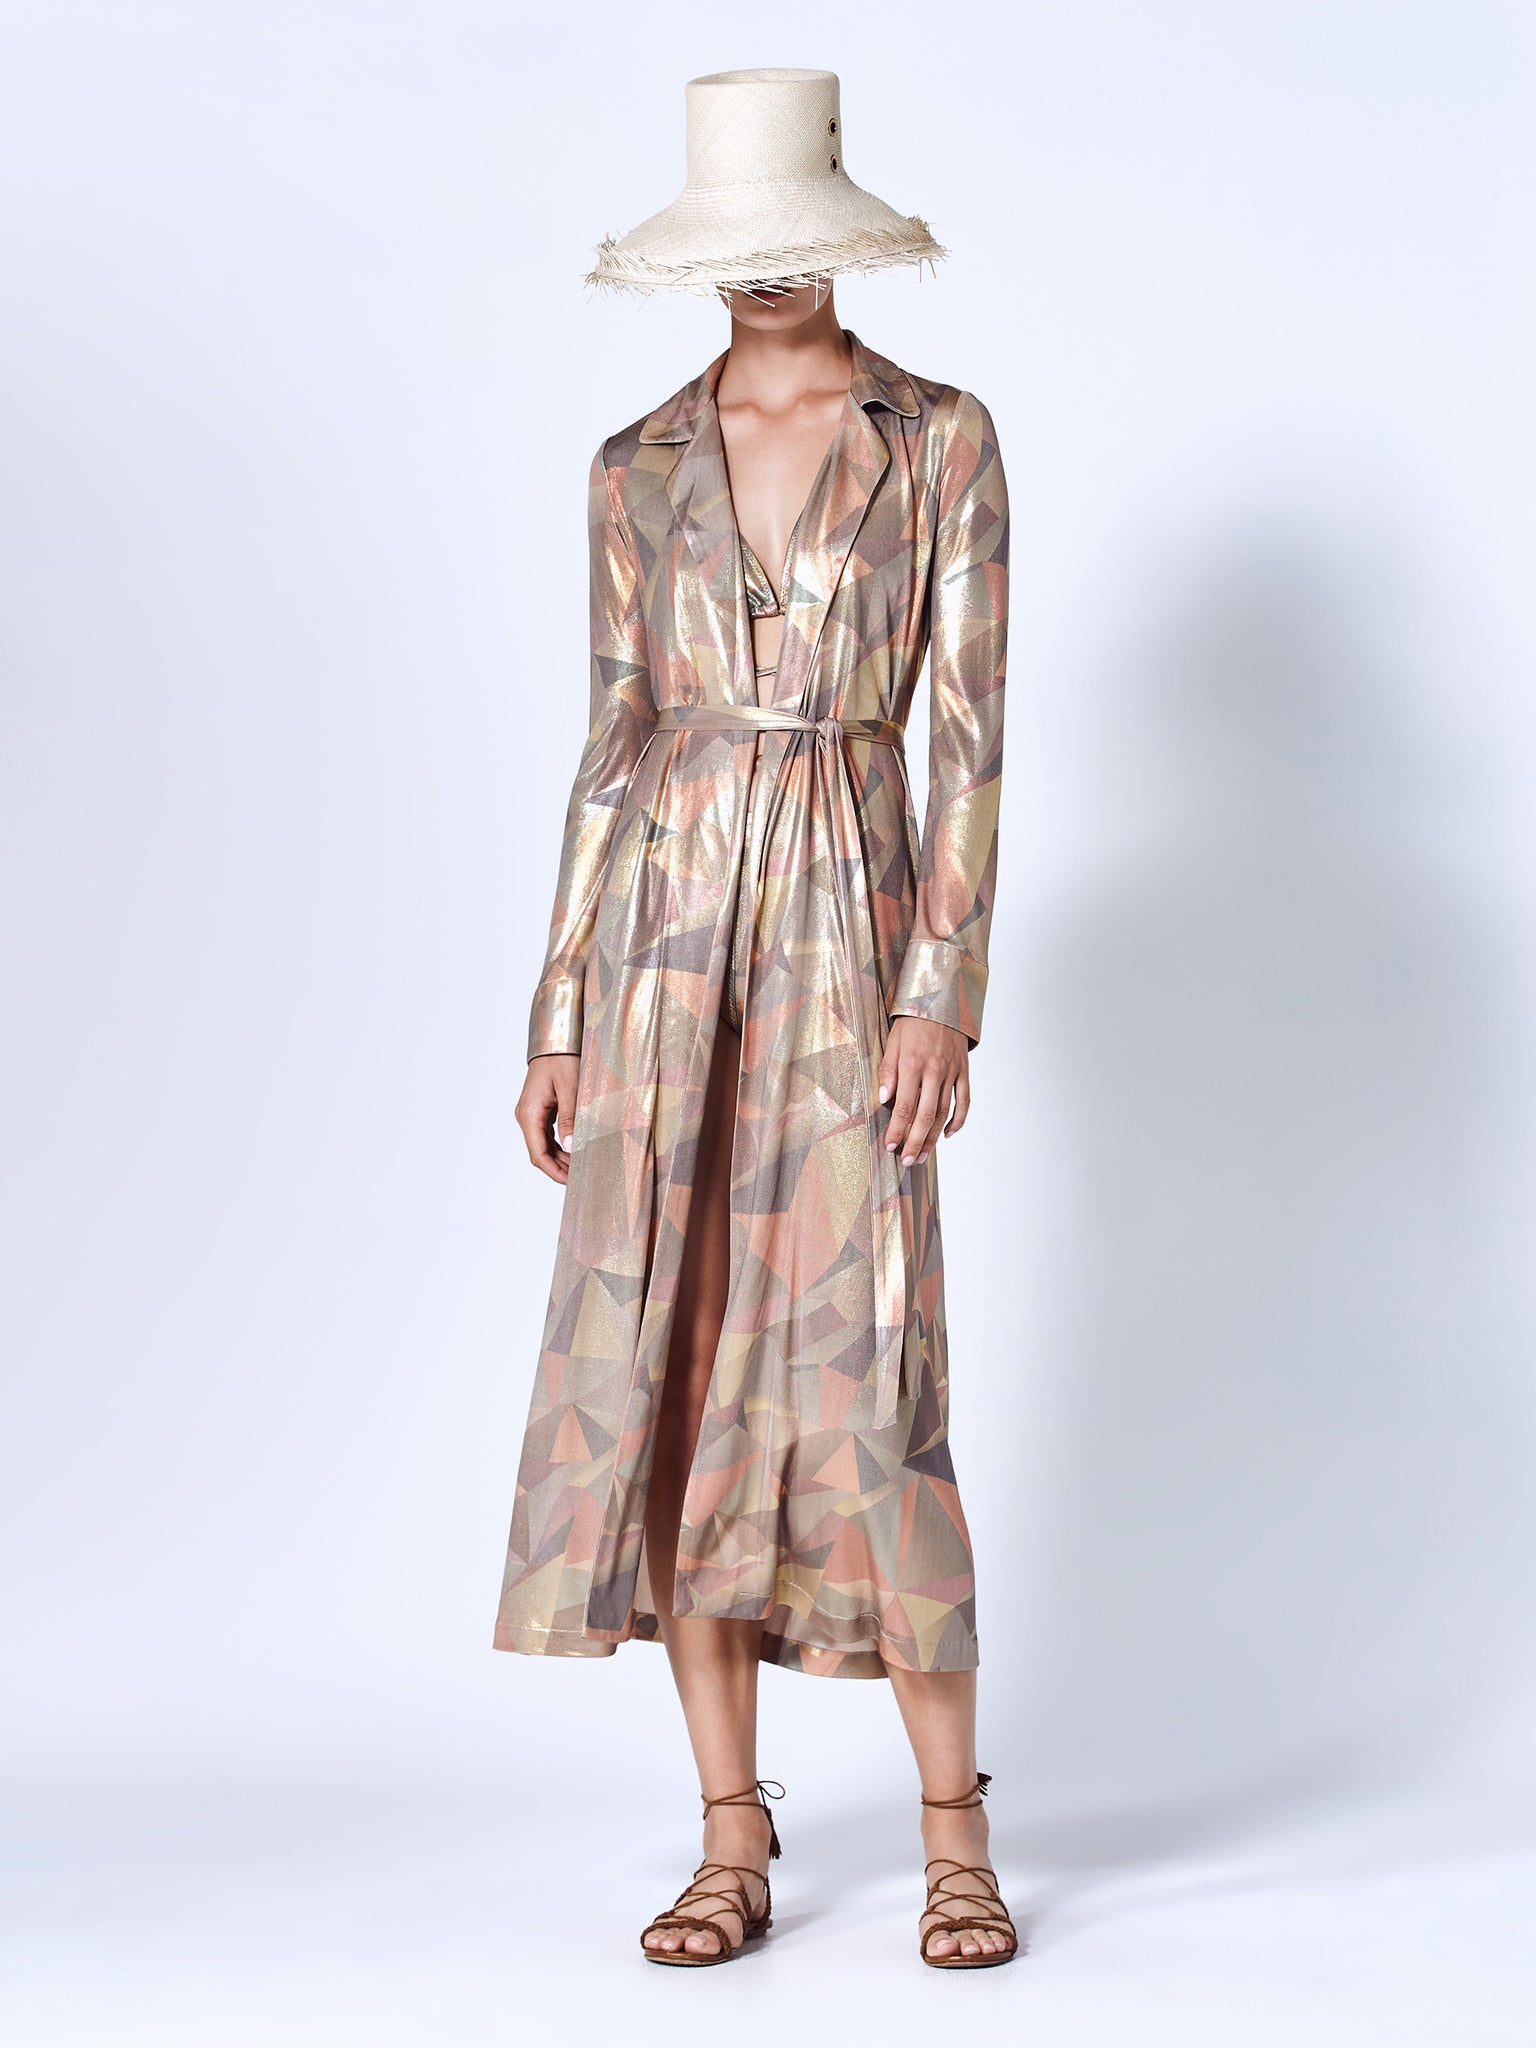 Alexis Beranger robe in bronze abstract print